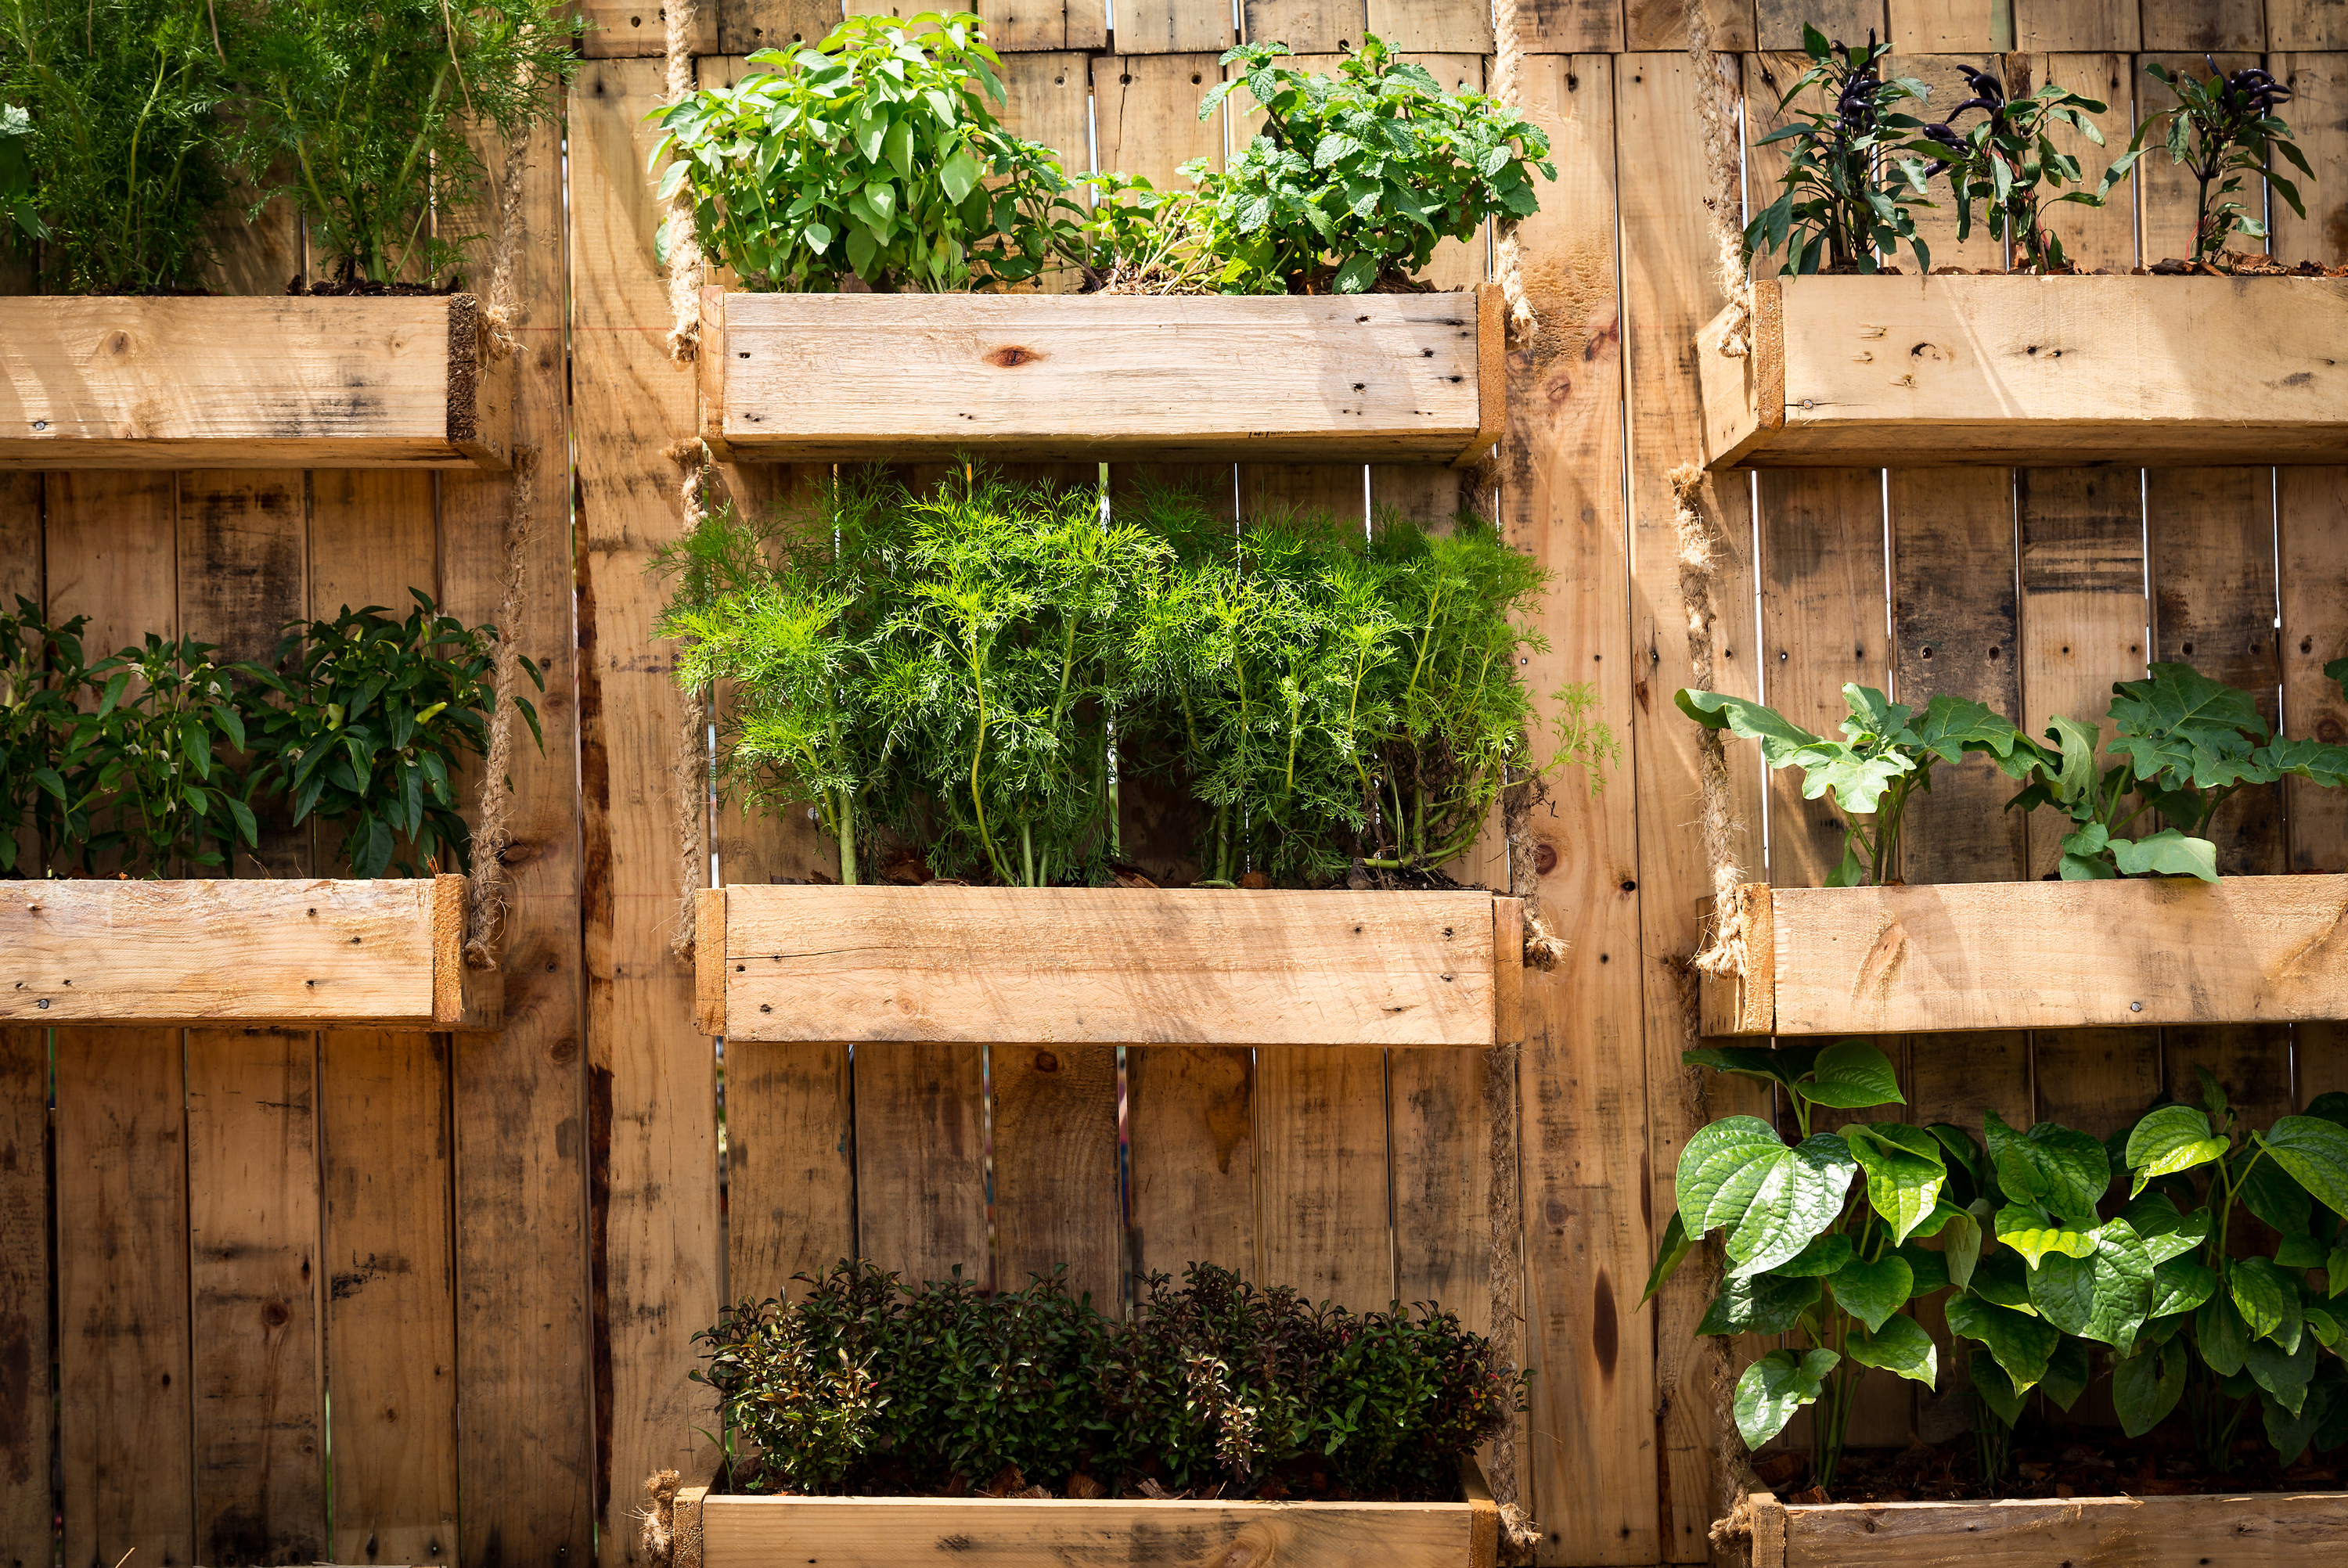 5 Home Vegetable Garden Ideas Types You Can Start On A Budget